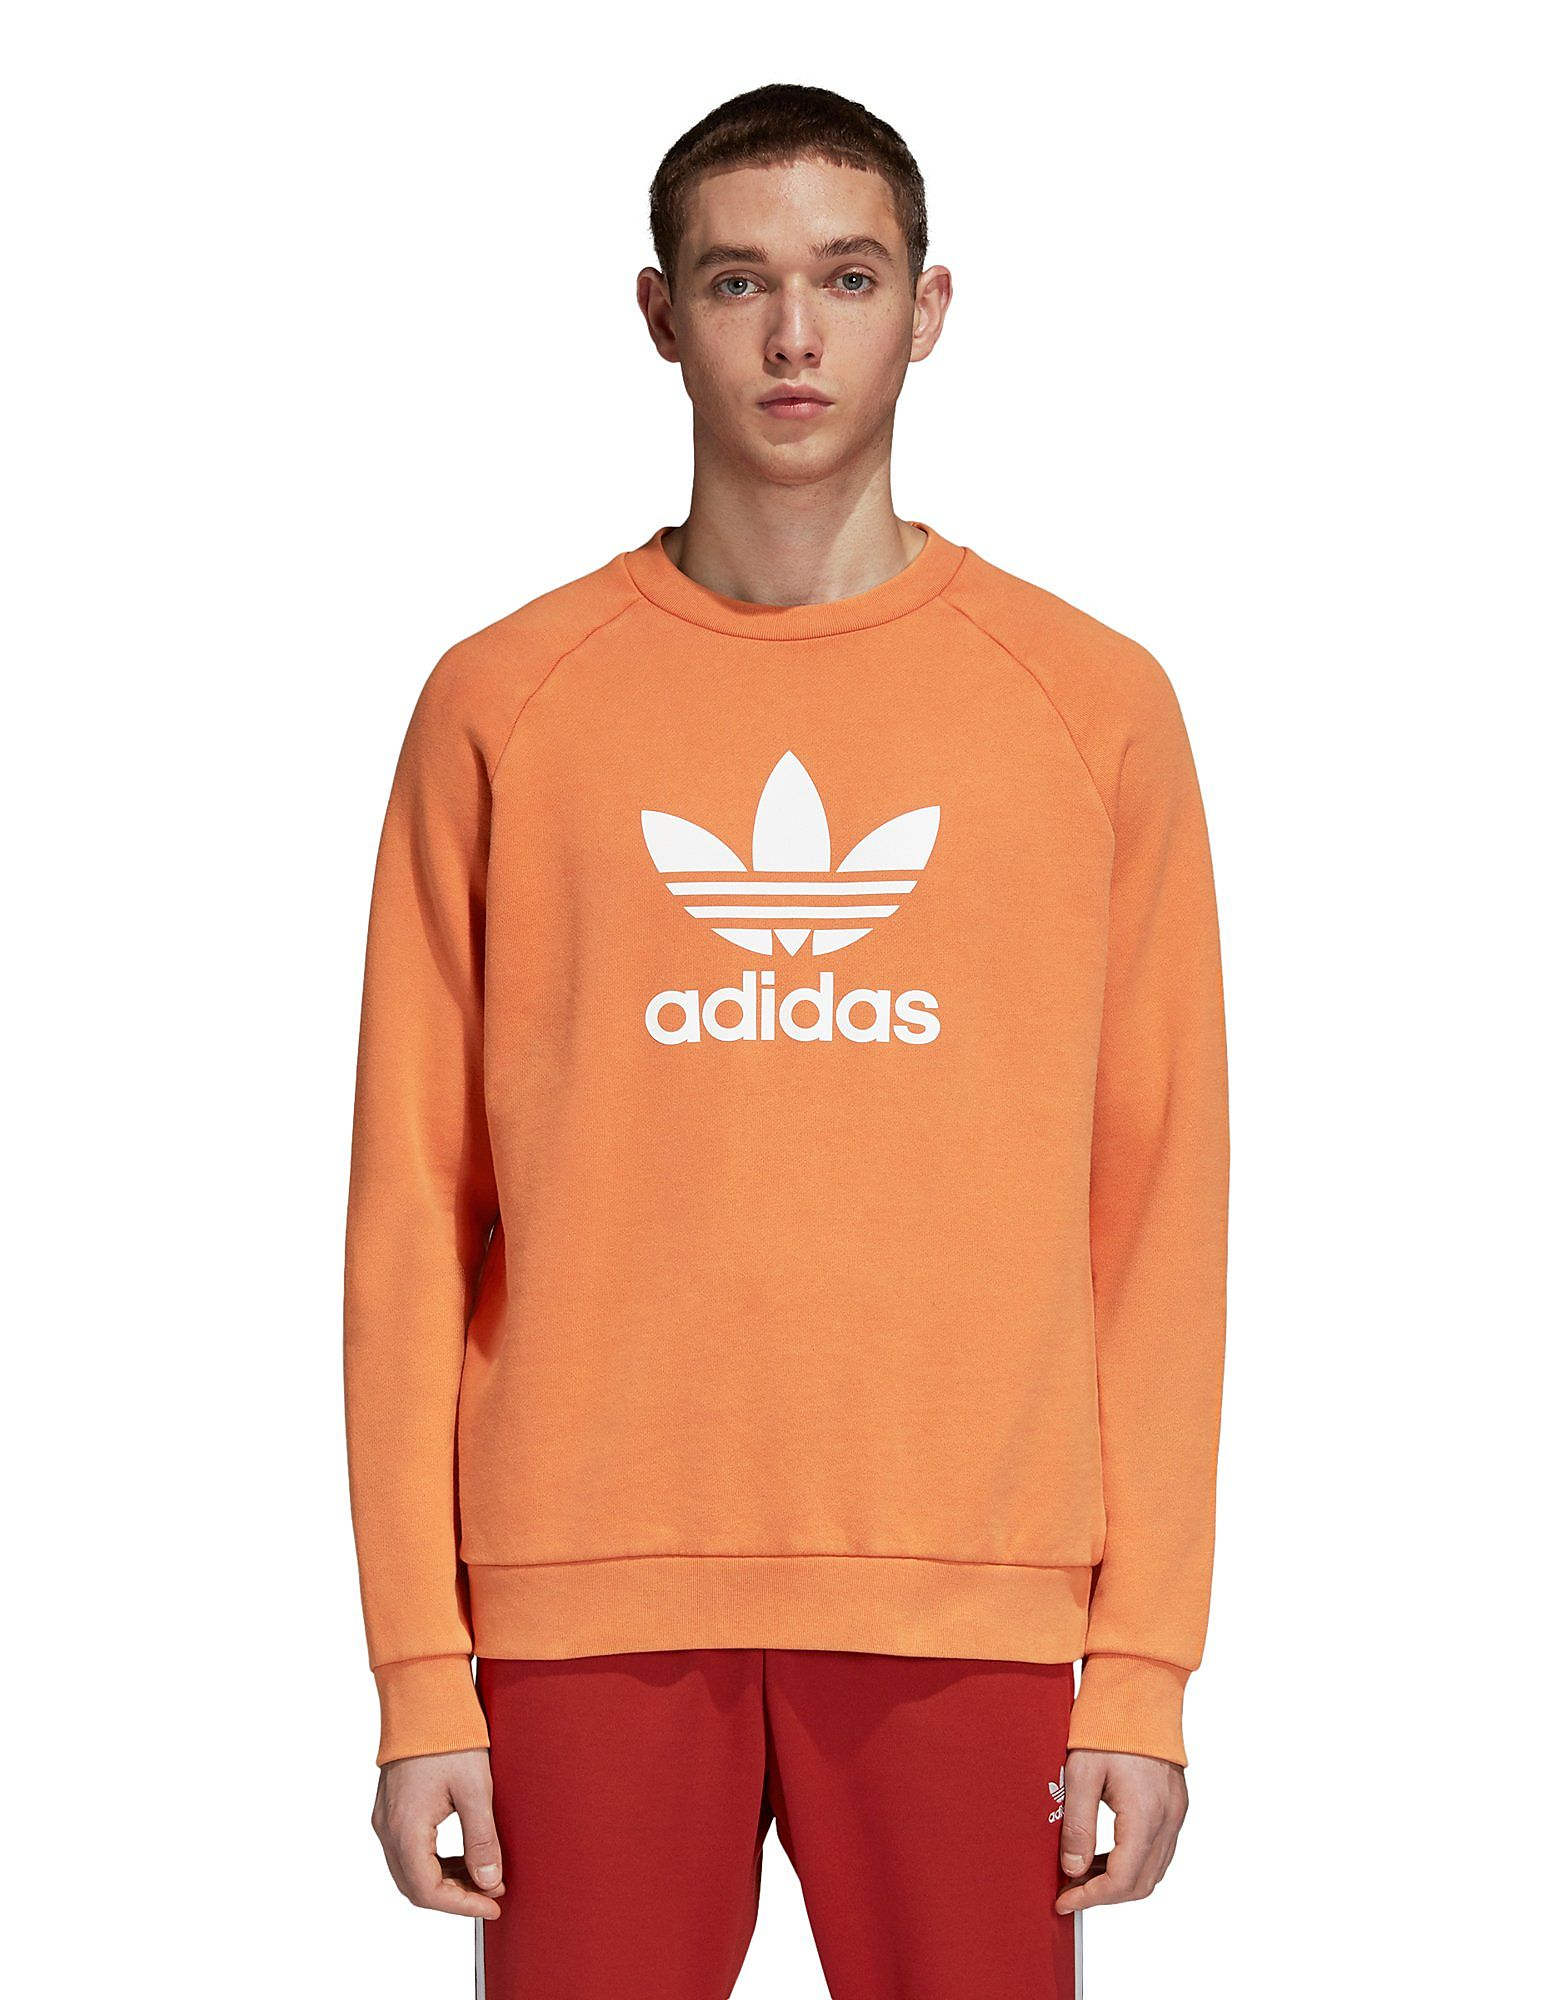 ADIDAS Trefoil Warm-Up Sweatshirt   JD Sports fe39fb4095